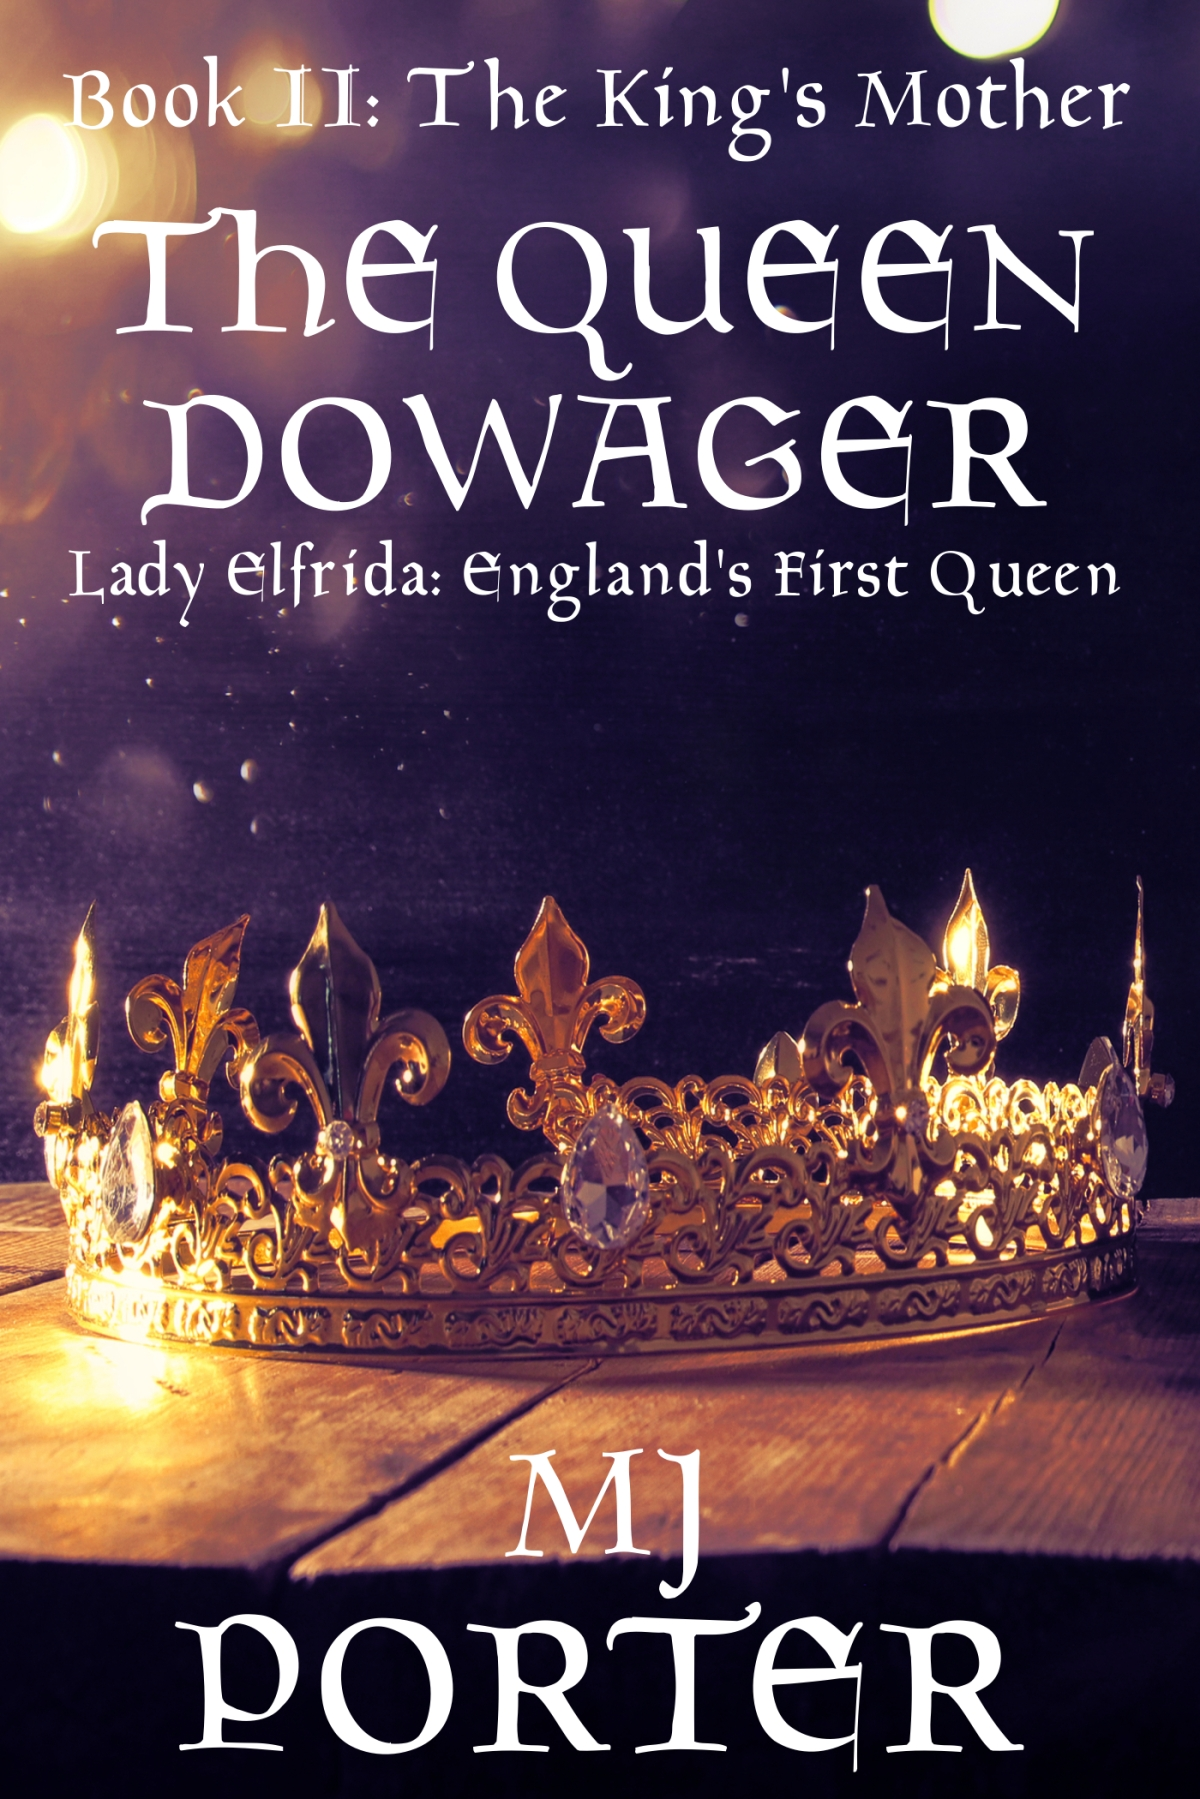 New Release Alert – The Queen Dowager by M J Porter (The King's Mother Book II)